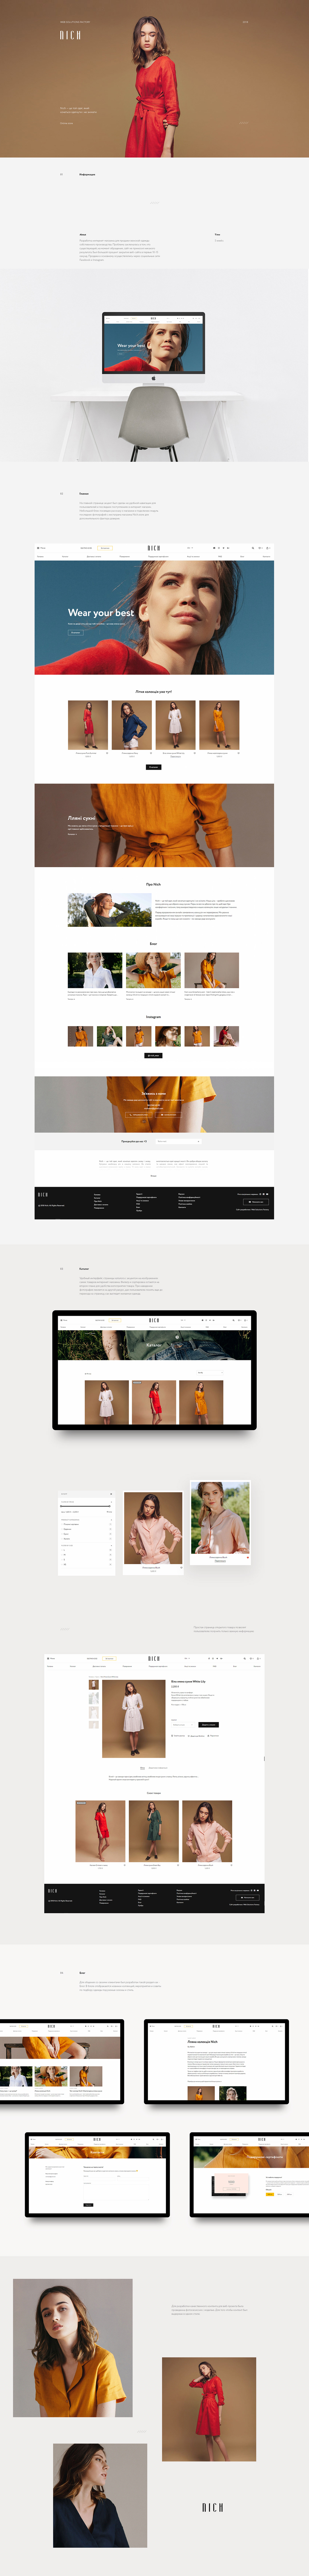 Webdesign design wsf ux UI Project store nich.store